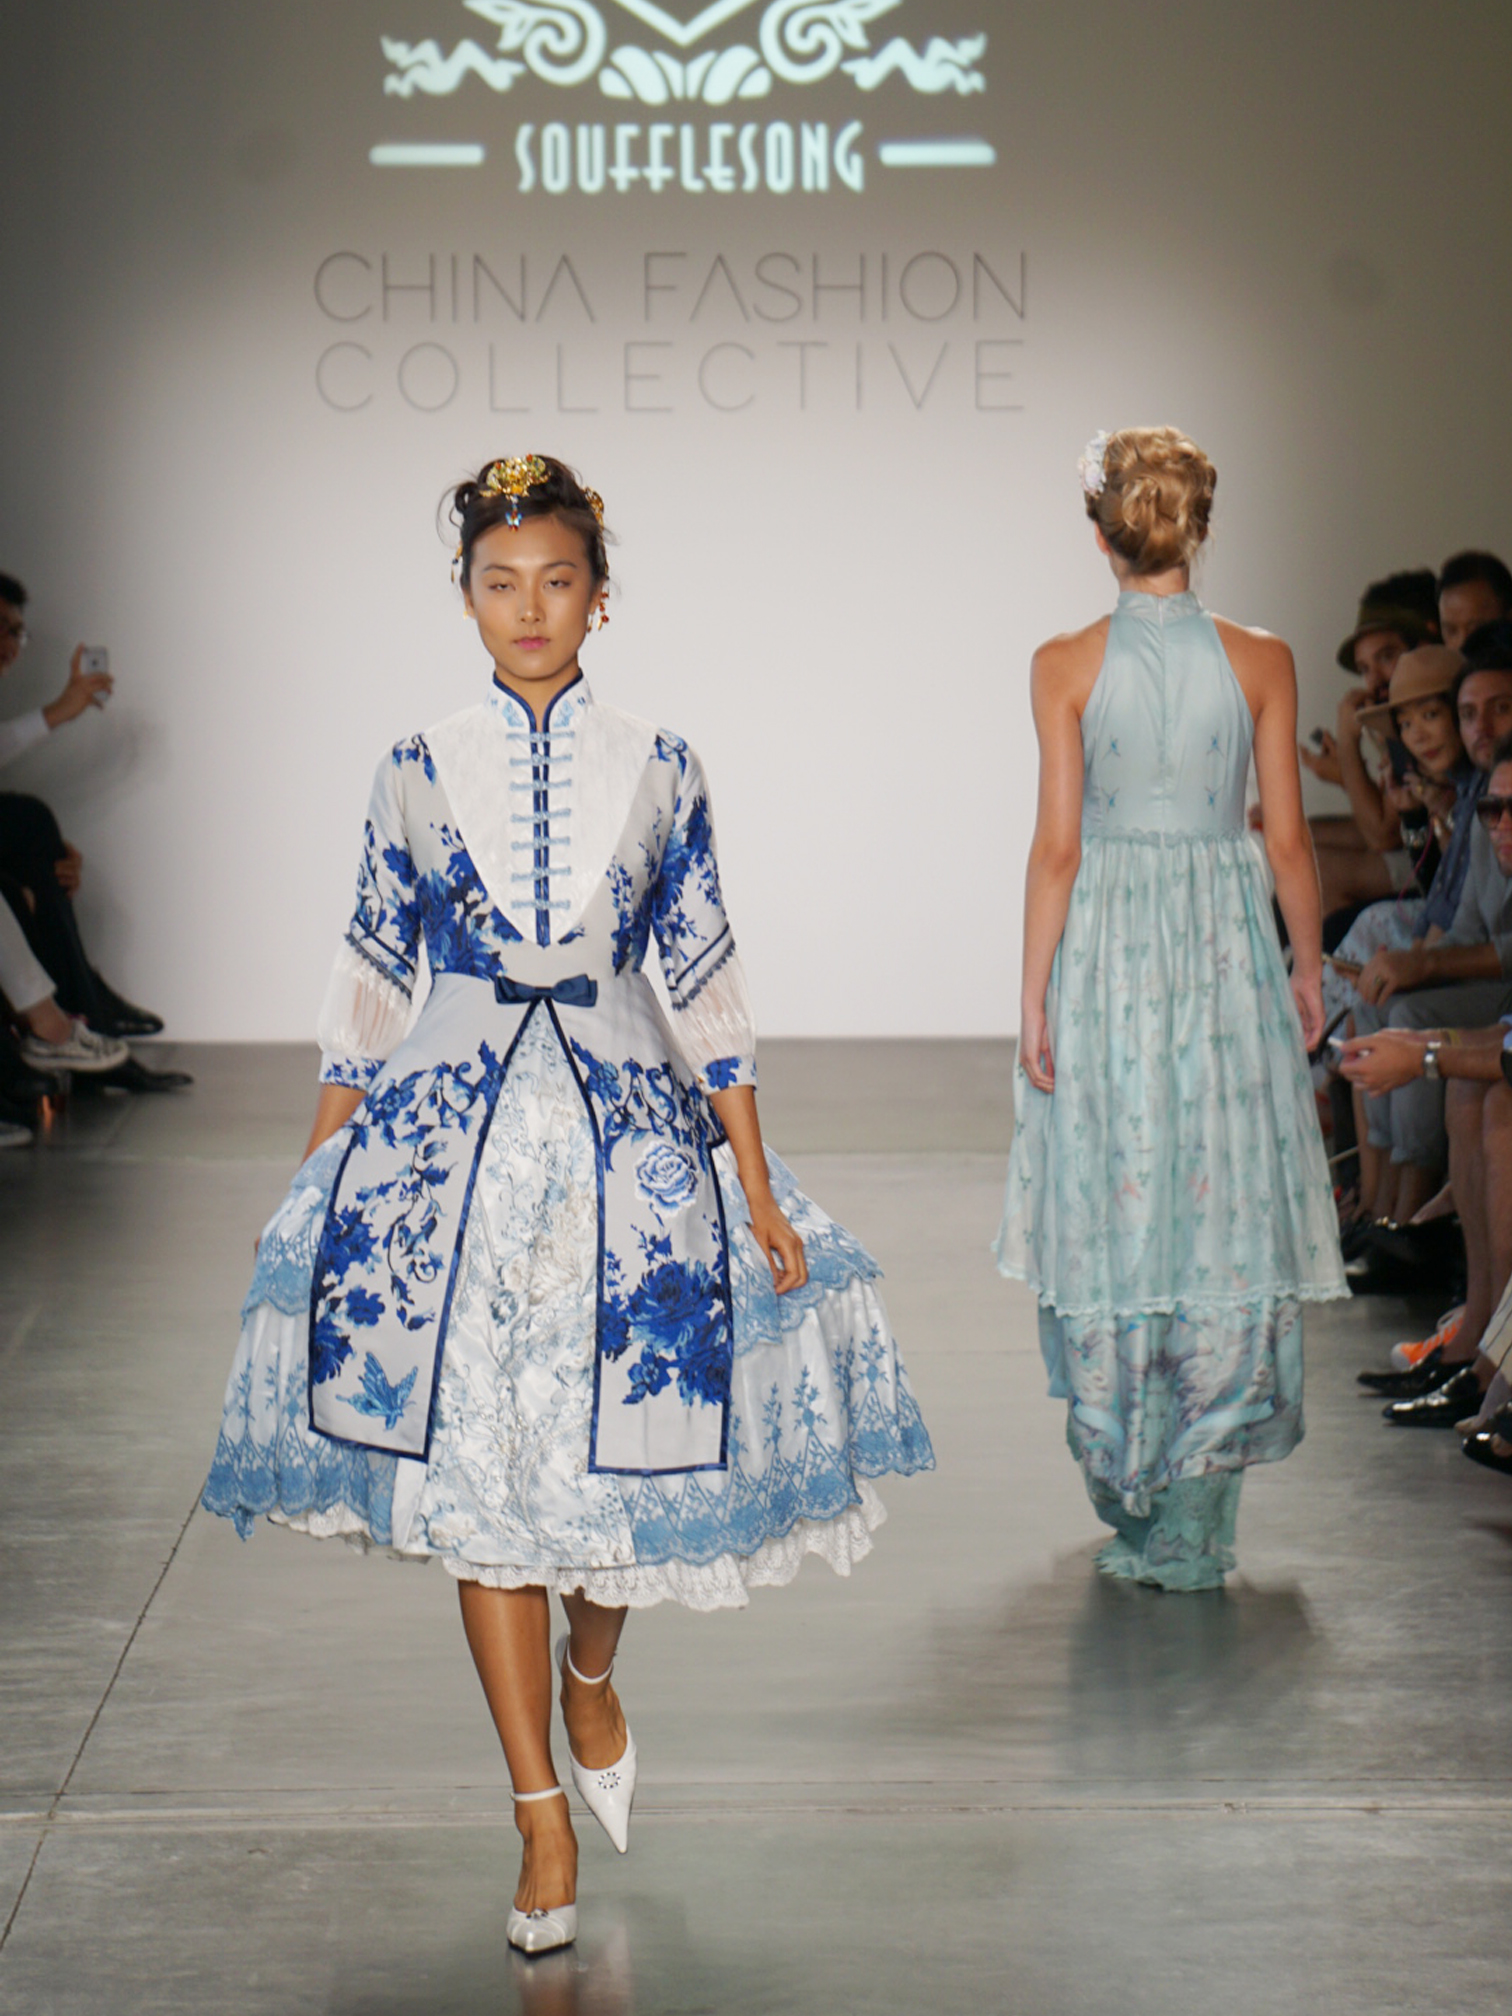 NYFW China fashion collective